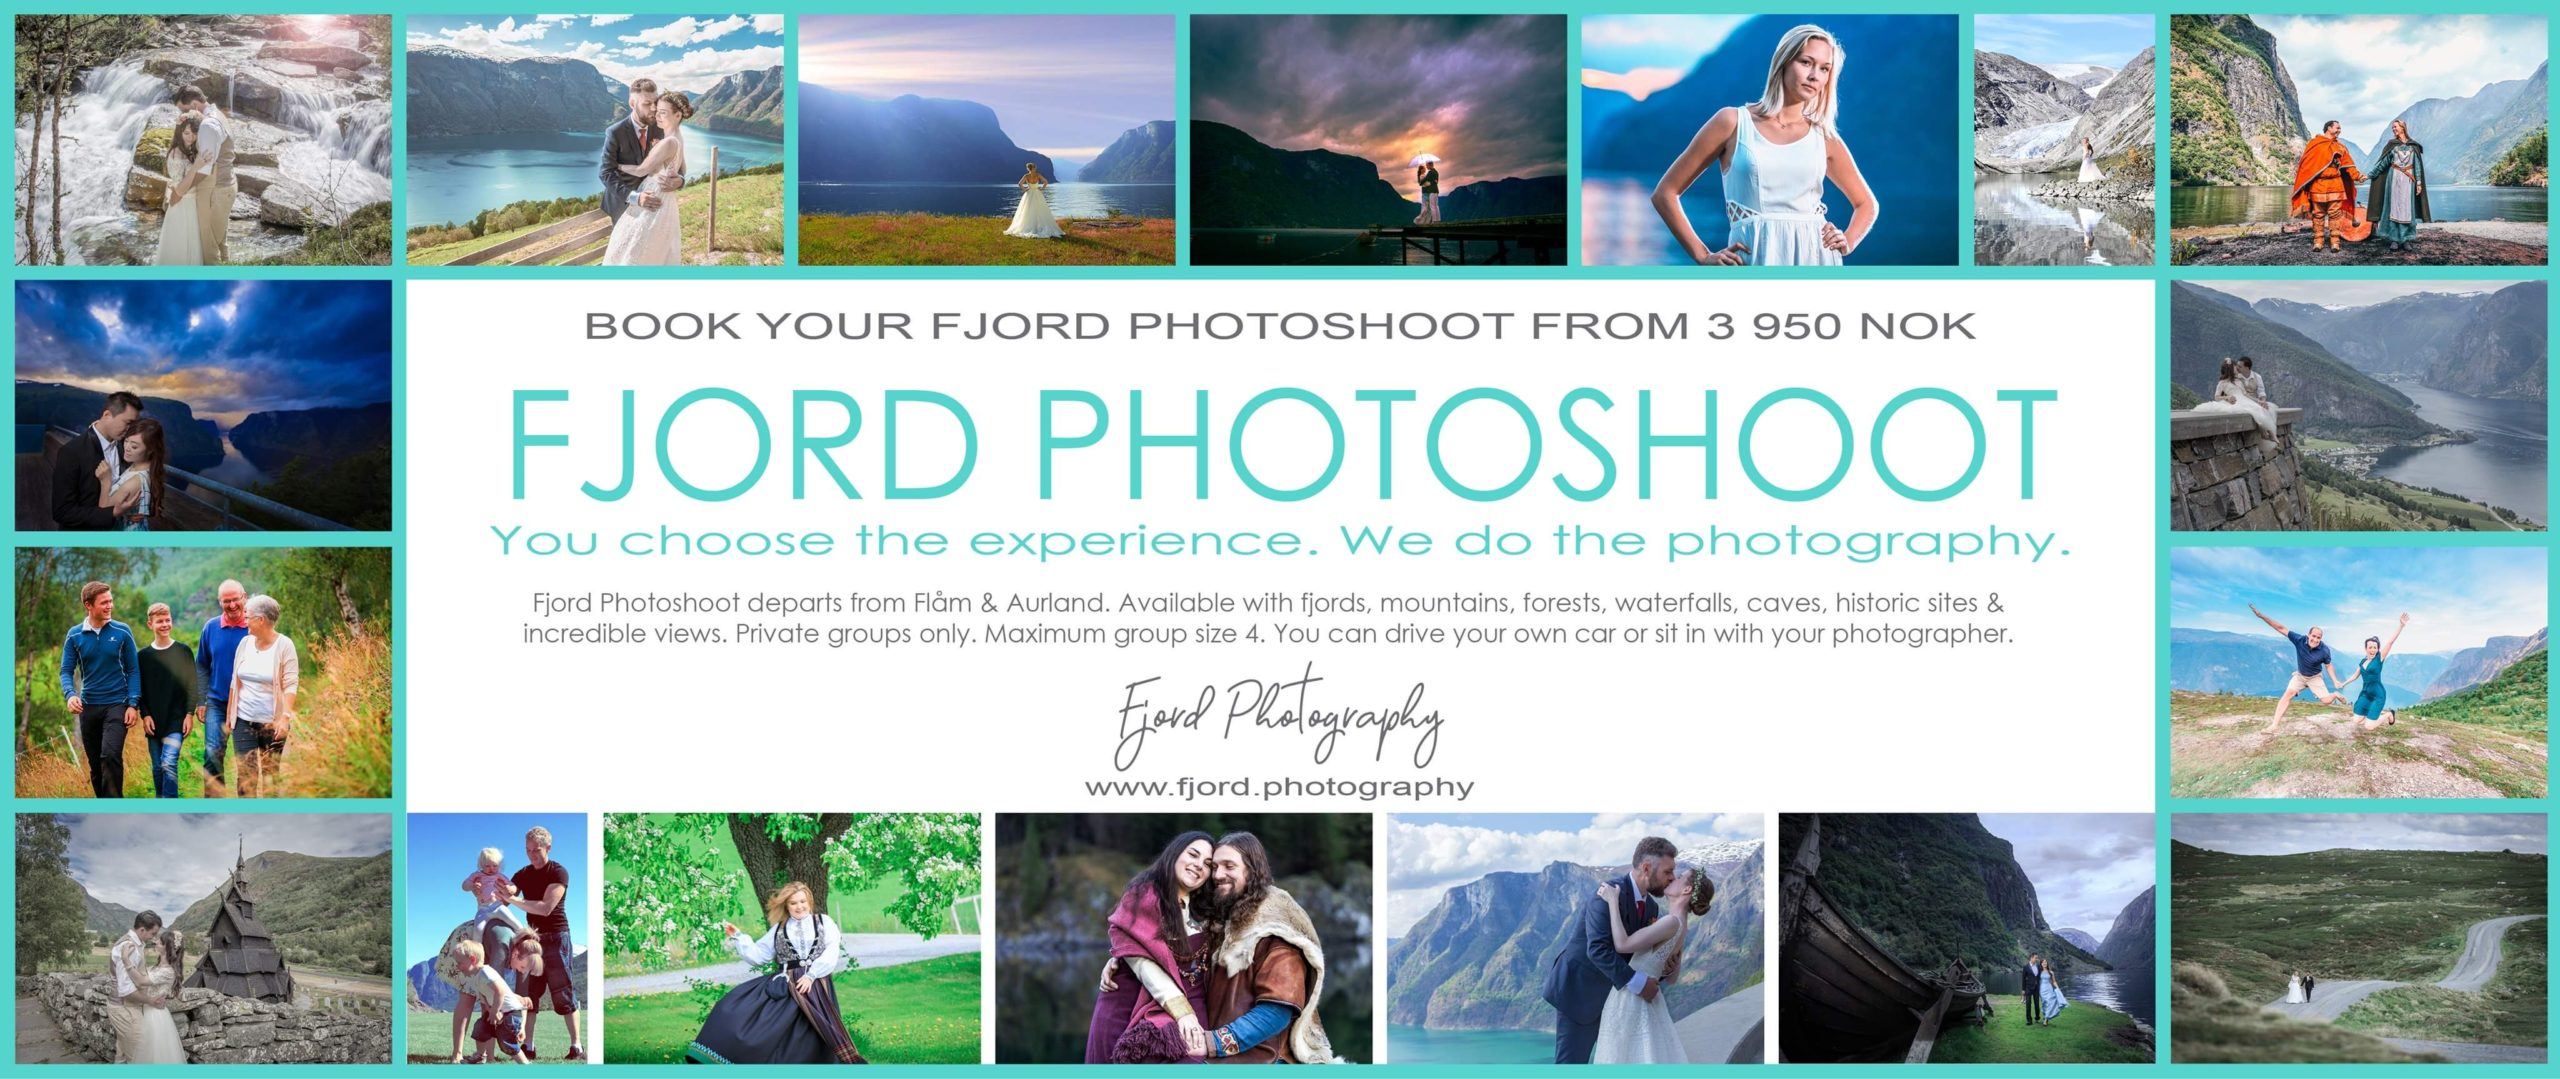 Fjord Photoshoot by Fjord Photography Paul Edmundson